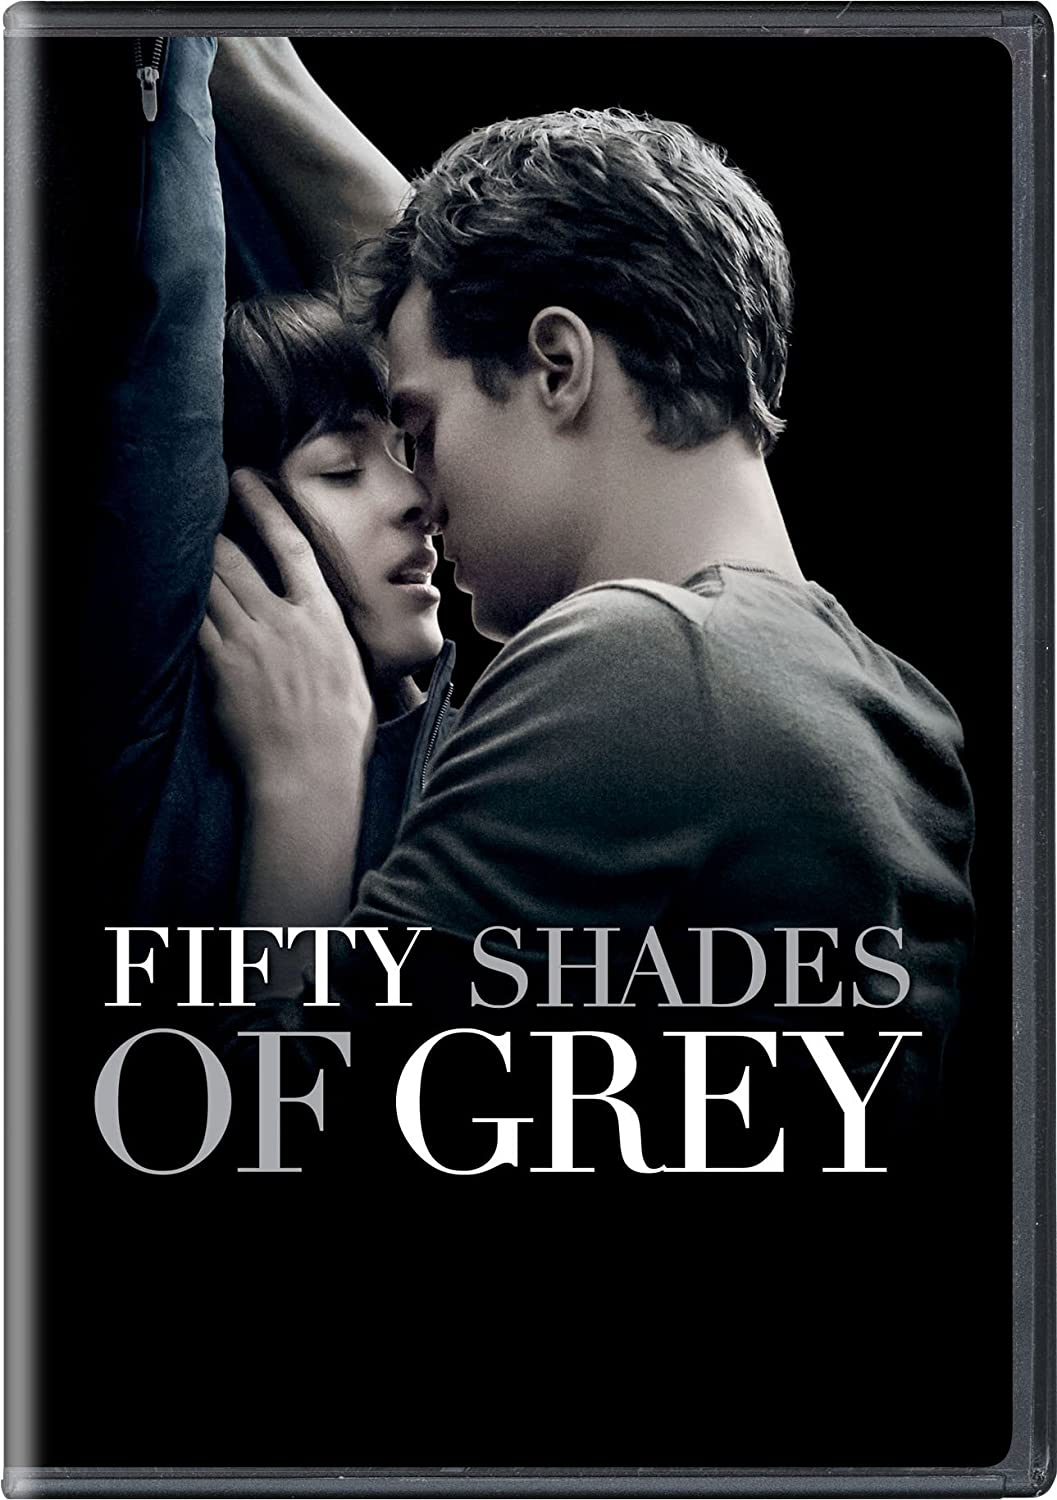 com fifty shades of grey dakota johnson jamie dornan  com fifty shades of grey dakota johnson jamie dornan jennifer ehle rita ora marcia gay harden victor rasuk luke grimes sam taylor johnson